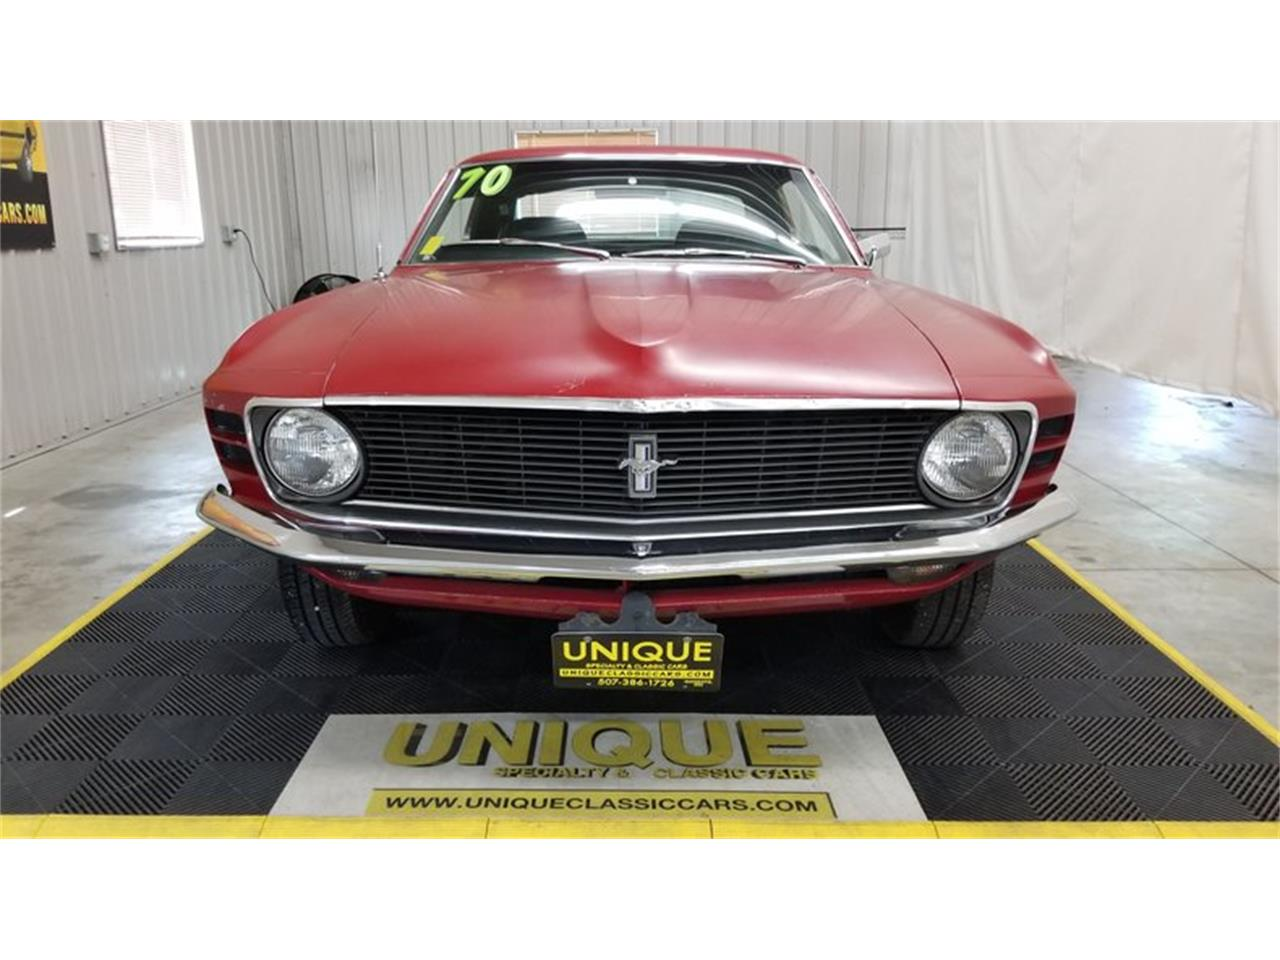 1970 Ford Mustang for sale in Mankato, MN – photo 2